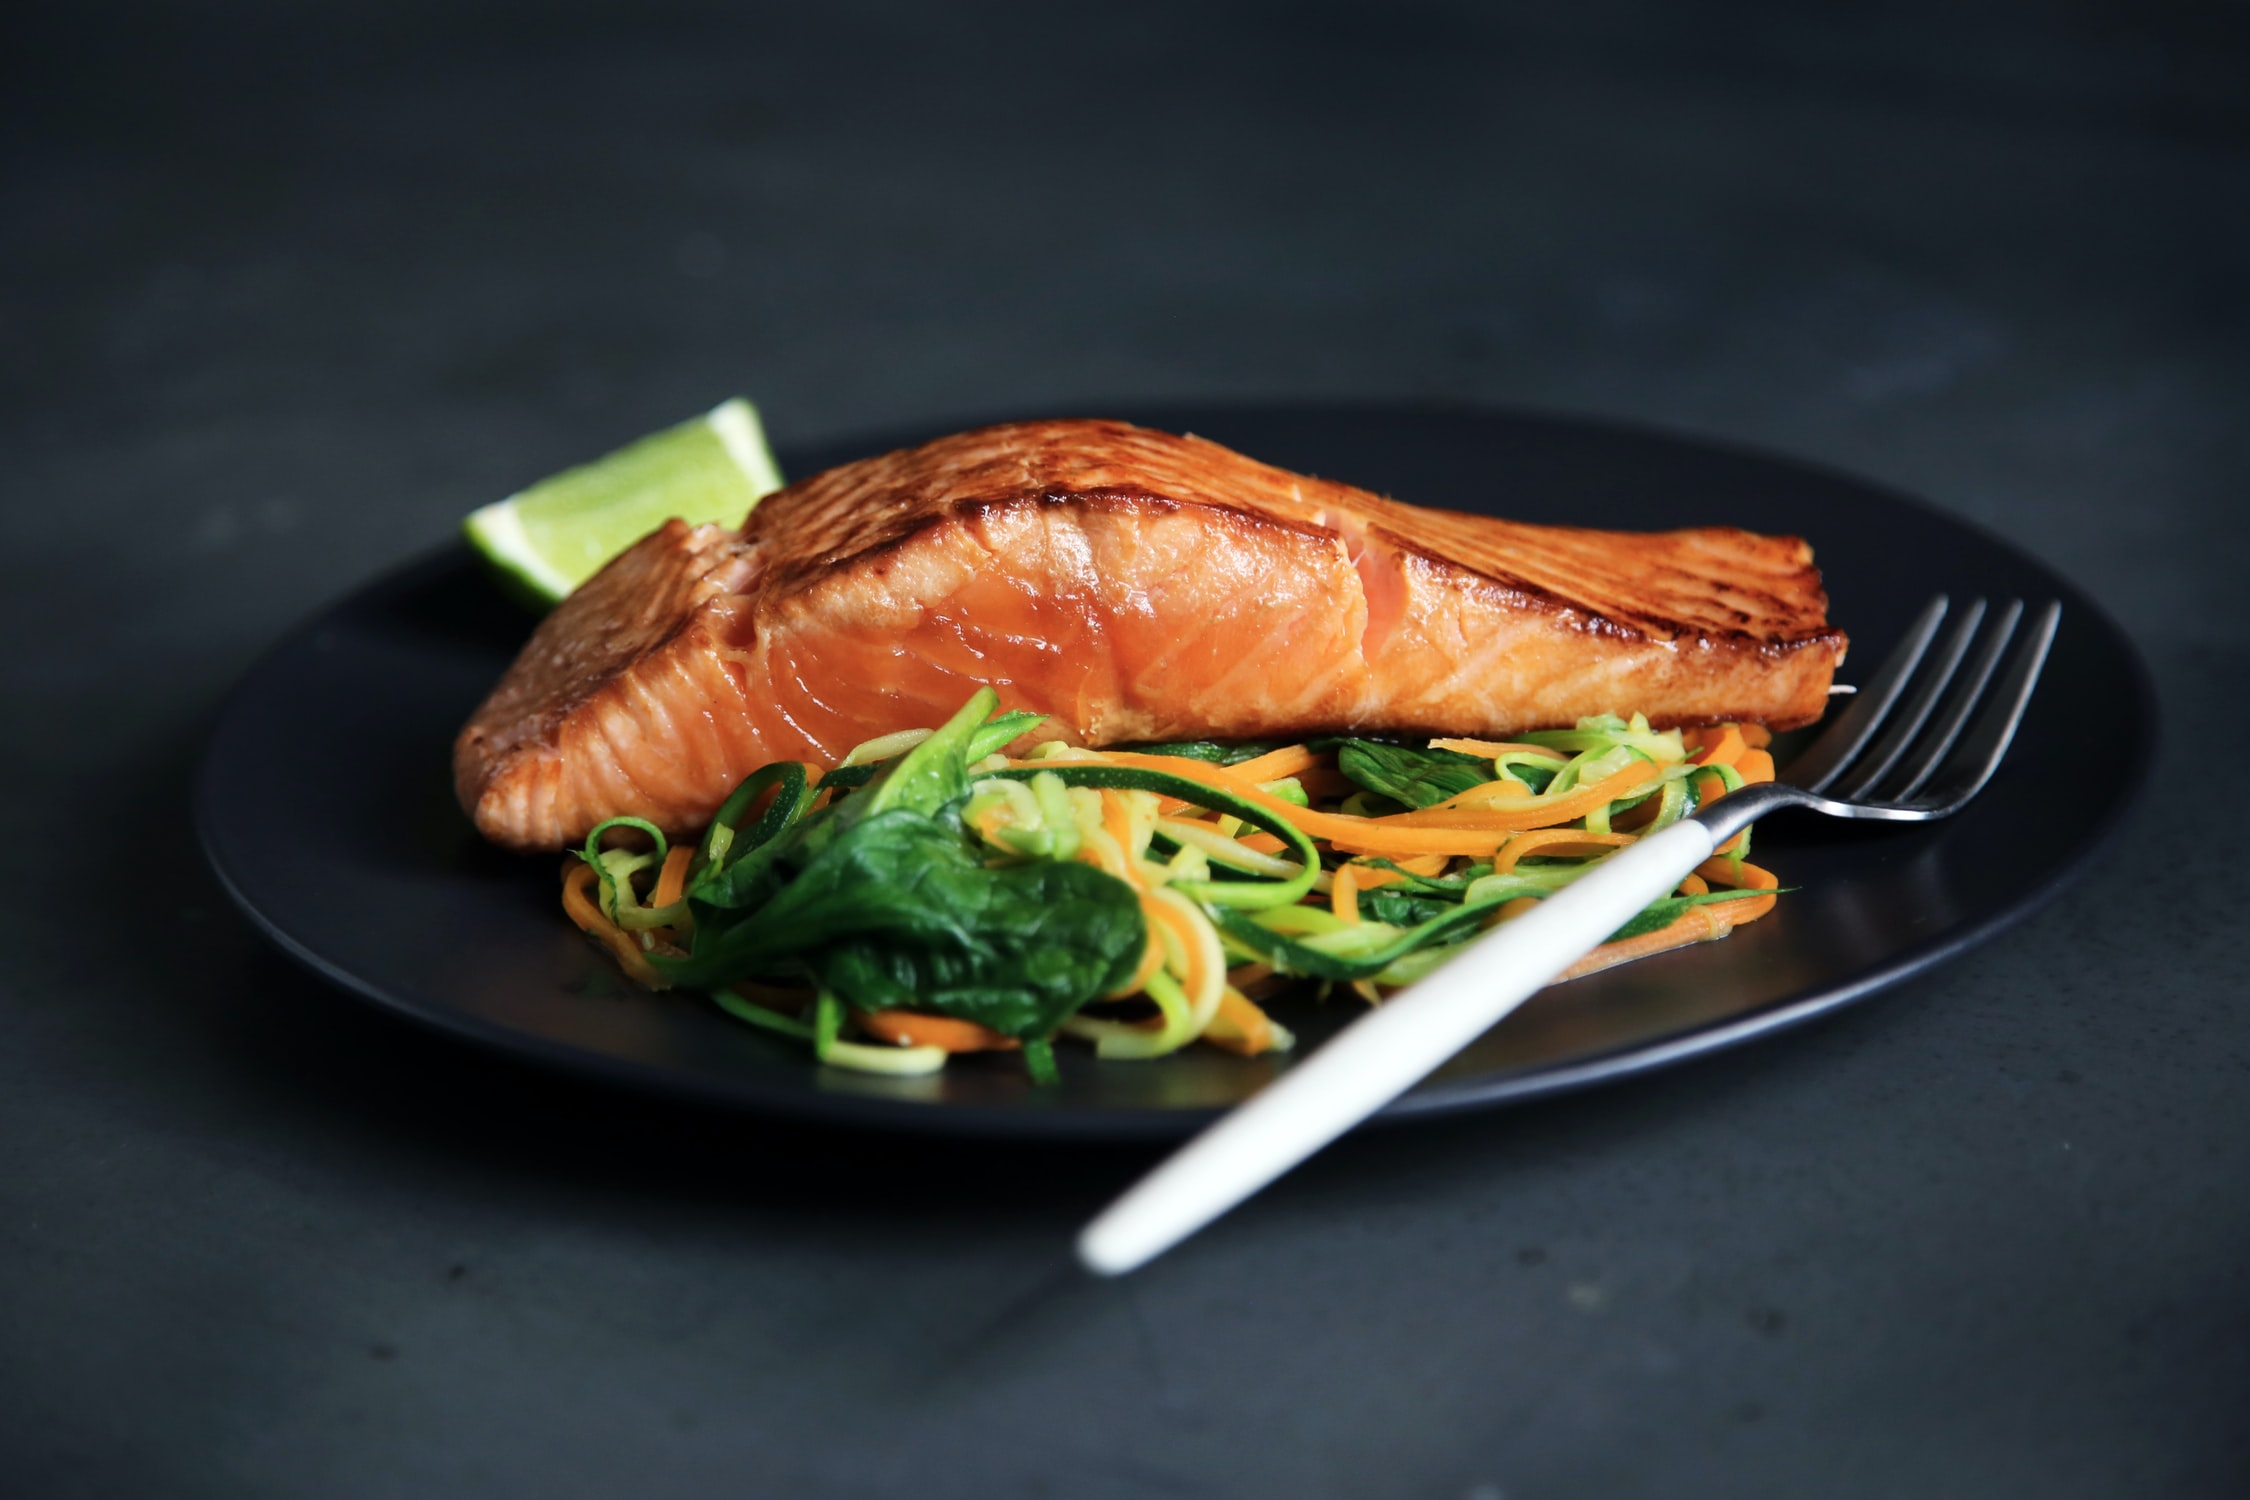 Salmon - Polyunsaturated fat - High-Fat Diet - 21 Day Full Body Cleanse - Keto Cleanse